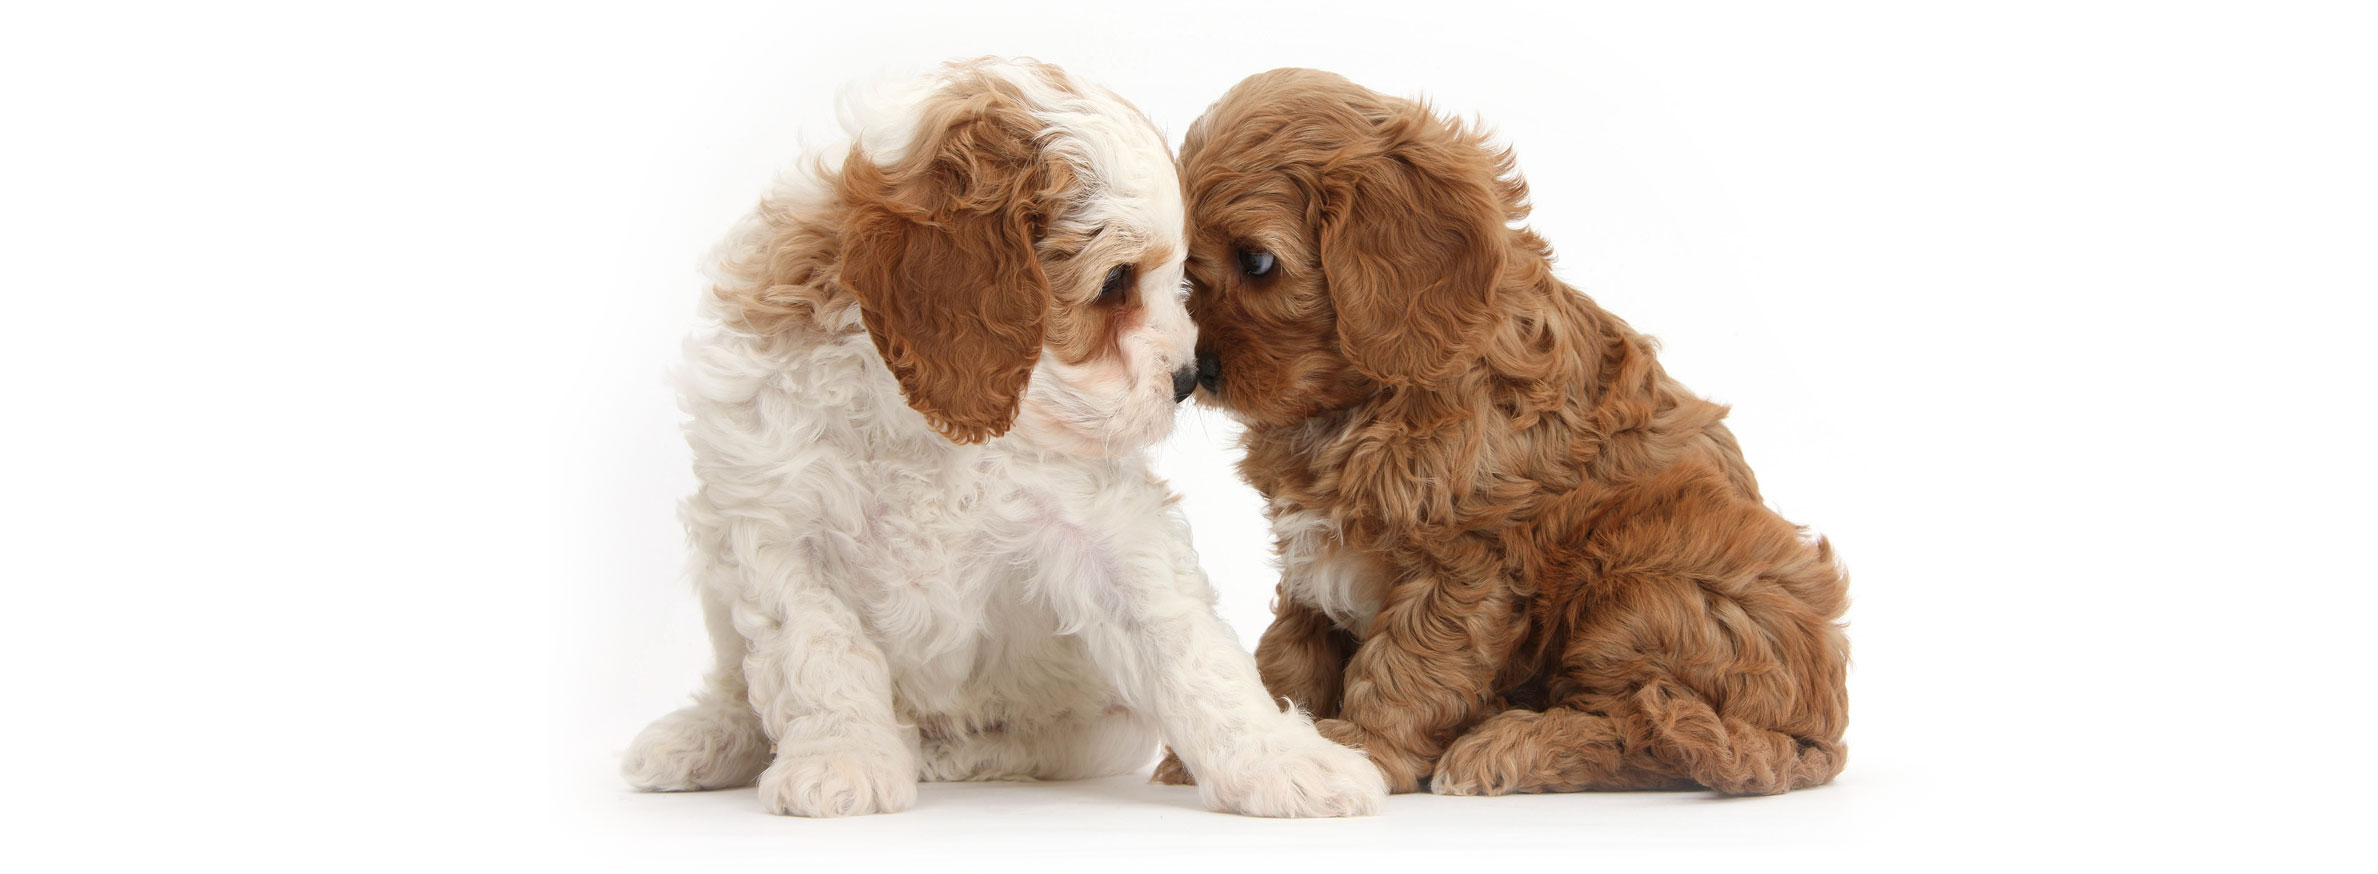 Massachusetts labradoodle puppies